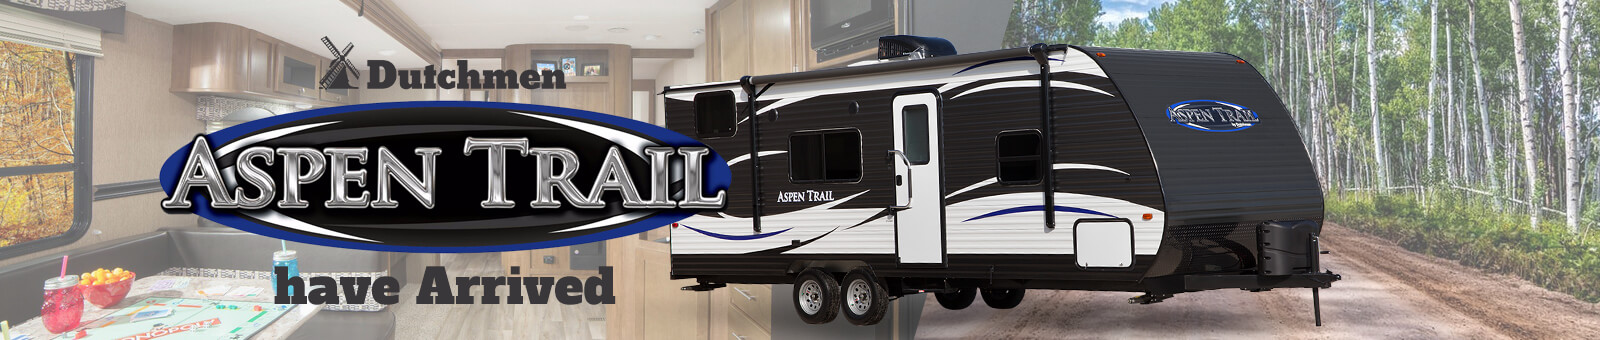 El Paso Texas Rv Dealer Las Cruces Nm Rv Dealer Used Rv Sales